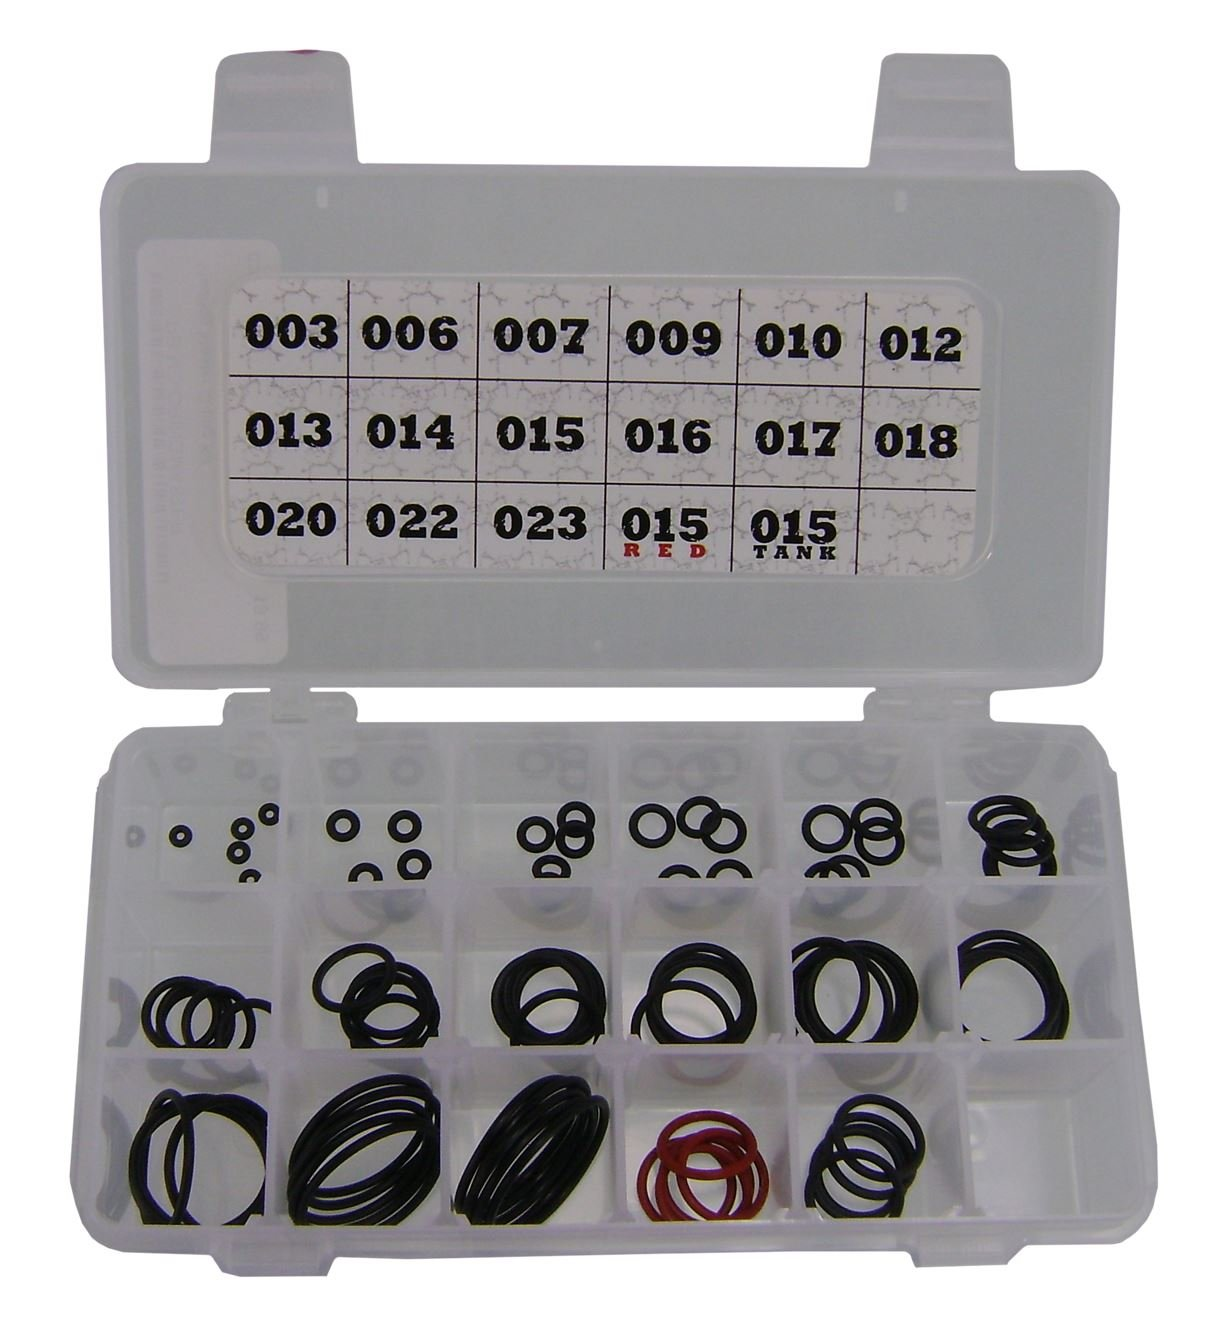 Maddog Master Paintball O-Ring Replacement Kit - 85 Total O-Rings with Storage Case by MAddog